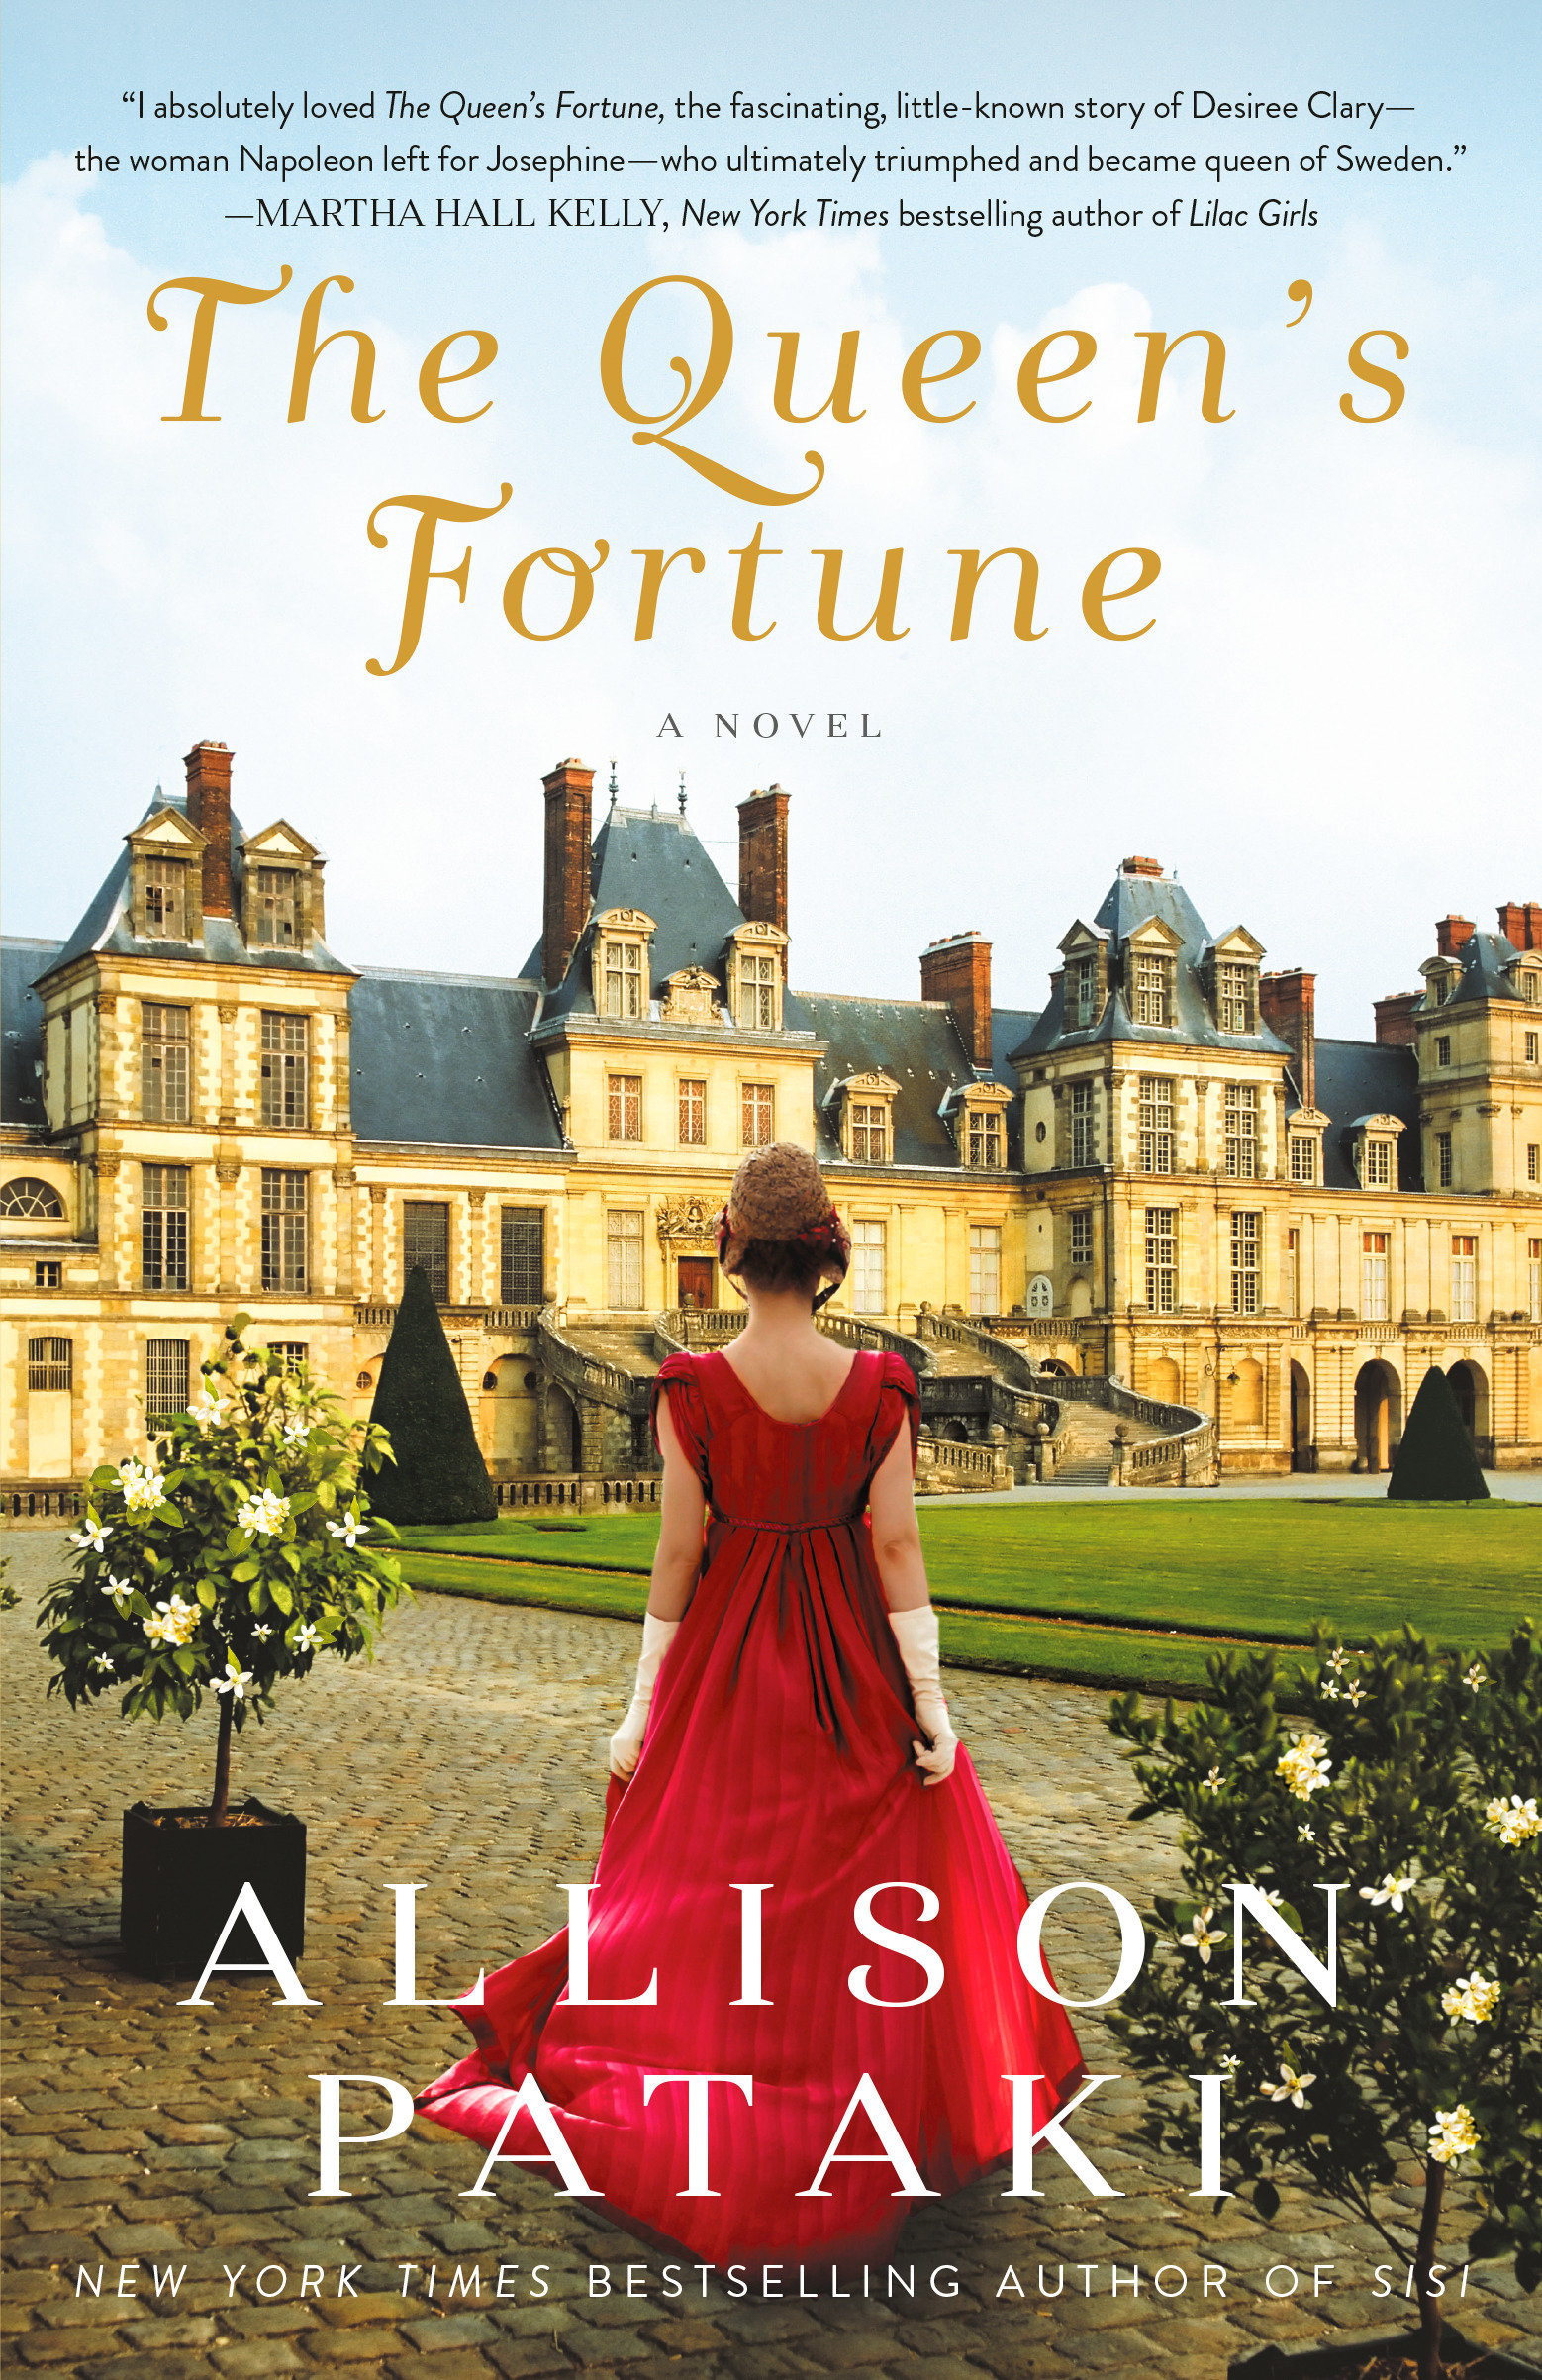 The queen's fortune a novel of Desiree, Napoleon, and the dynasty that outlasted the empire